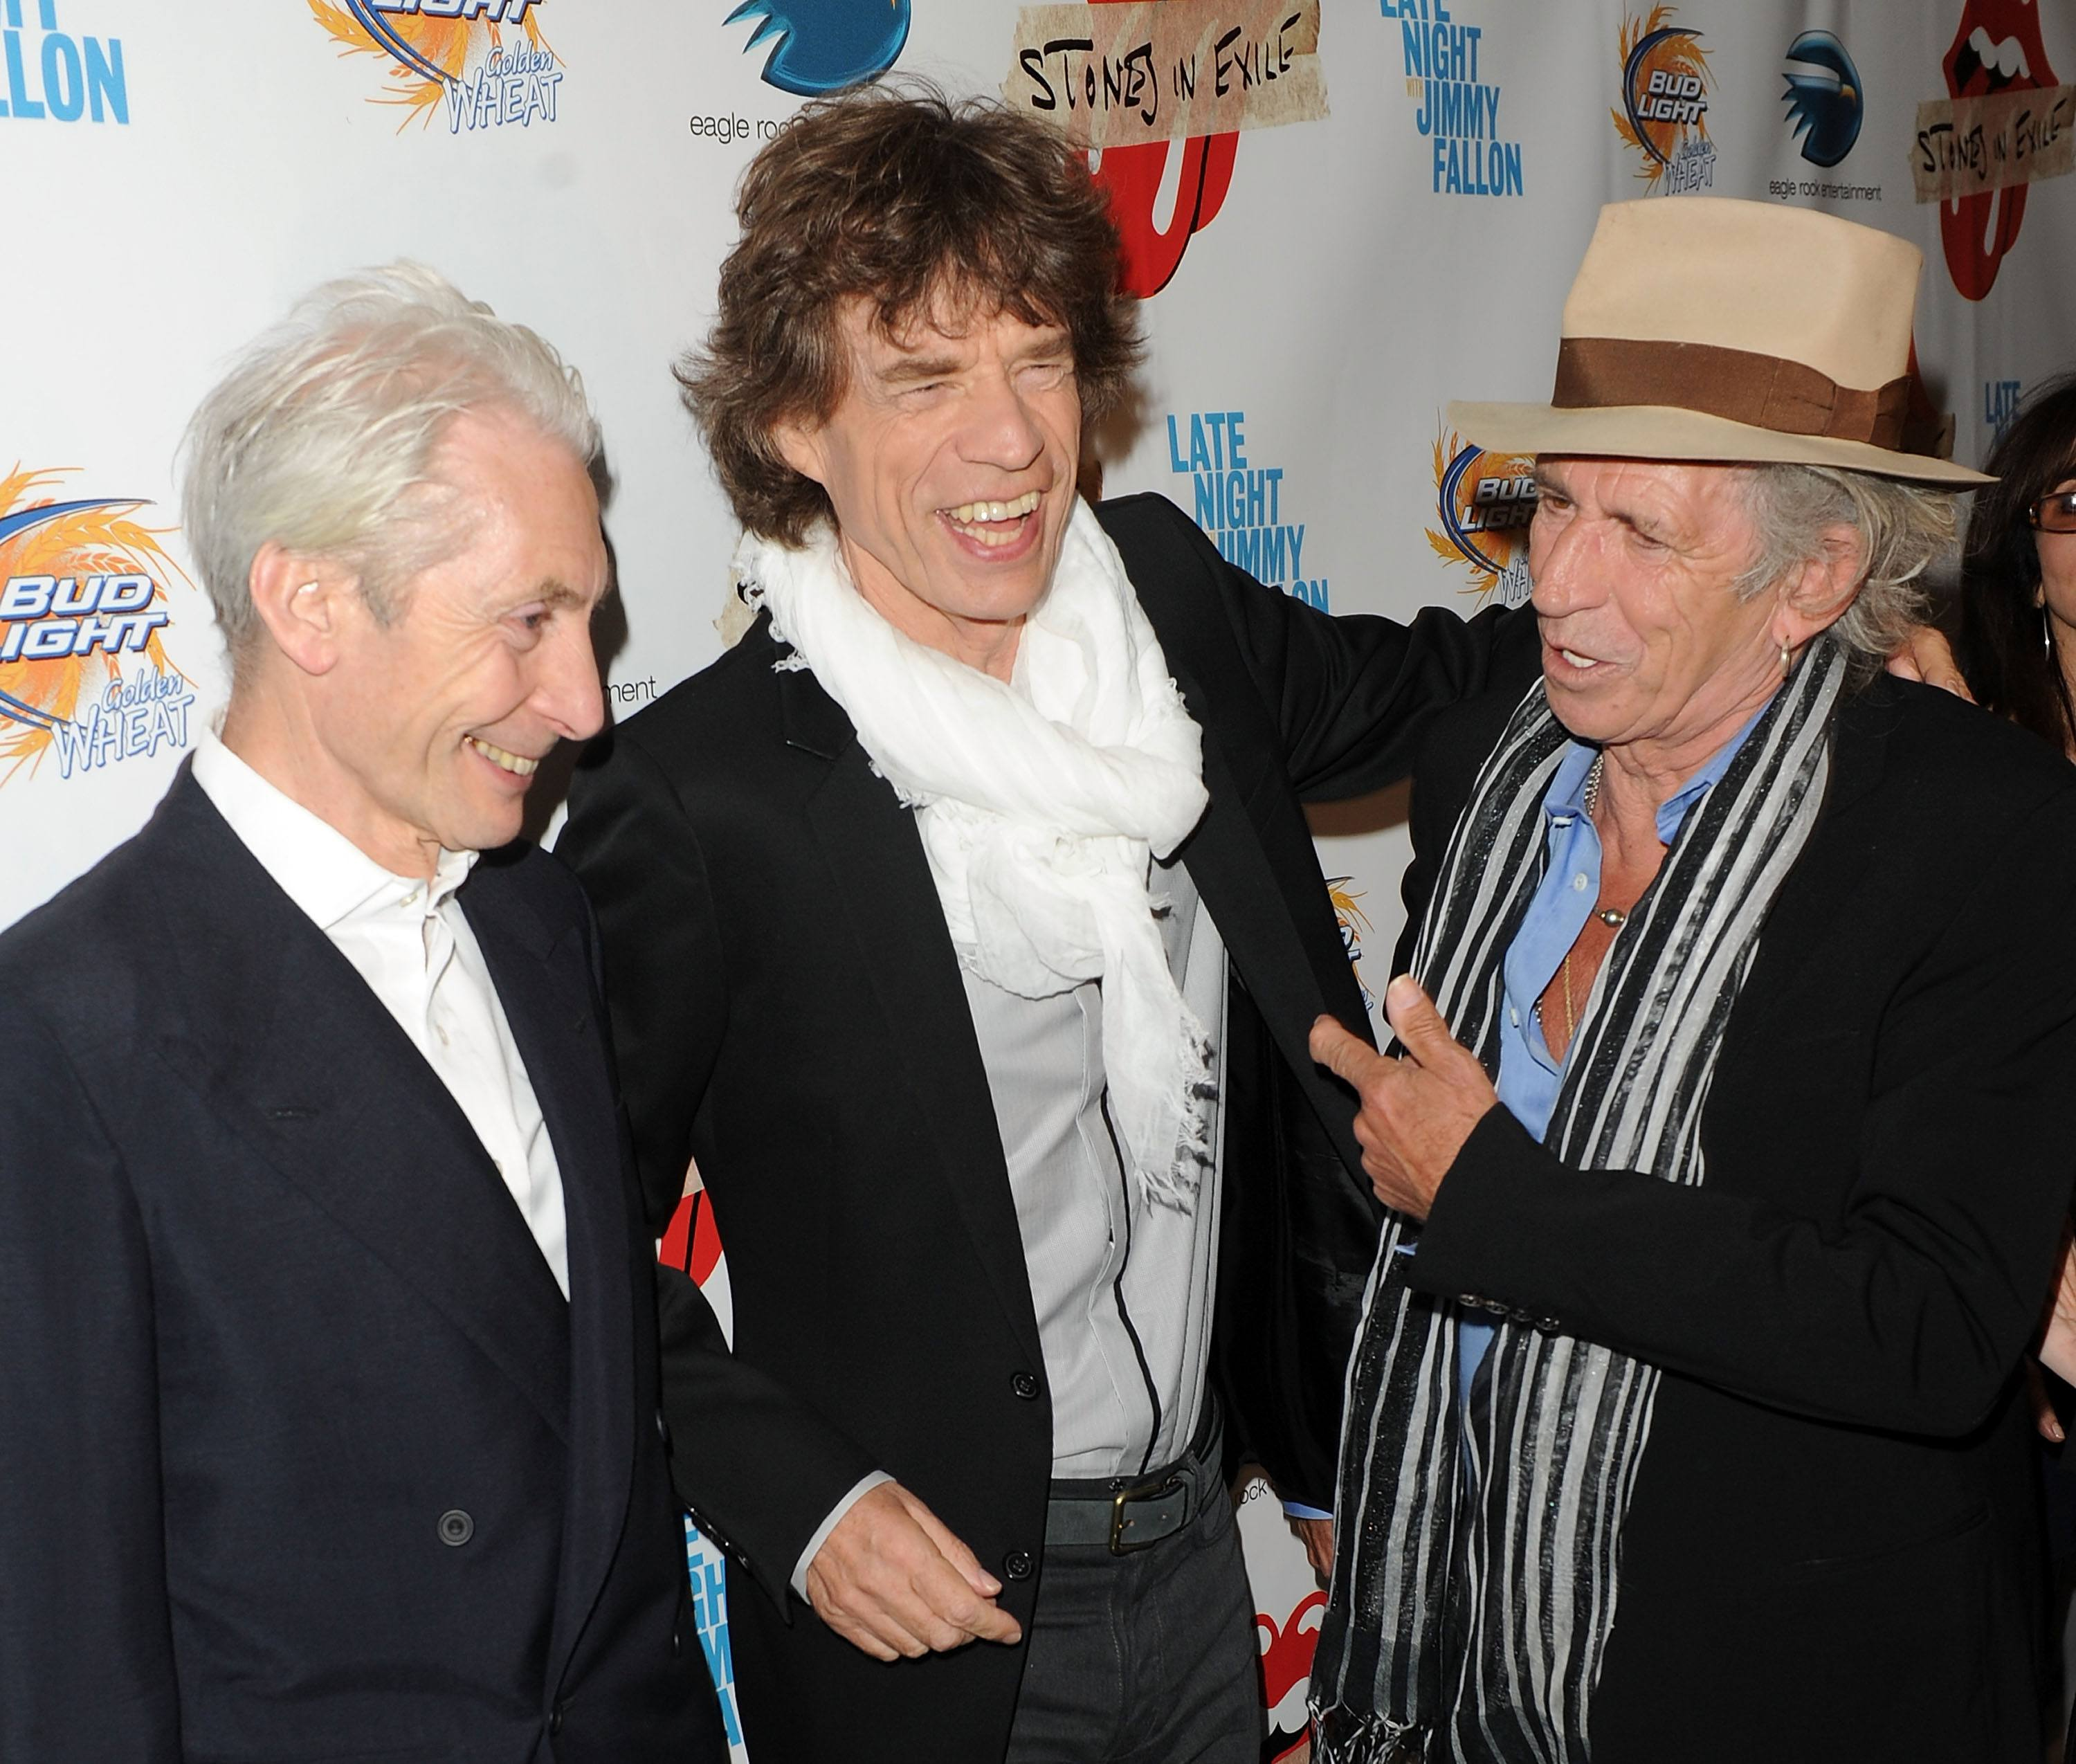 Mick Jagger 2010 Charlie Watts Keith Richards